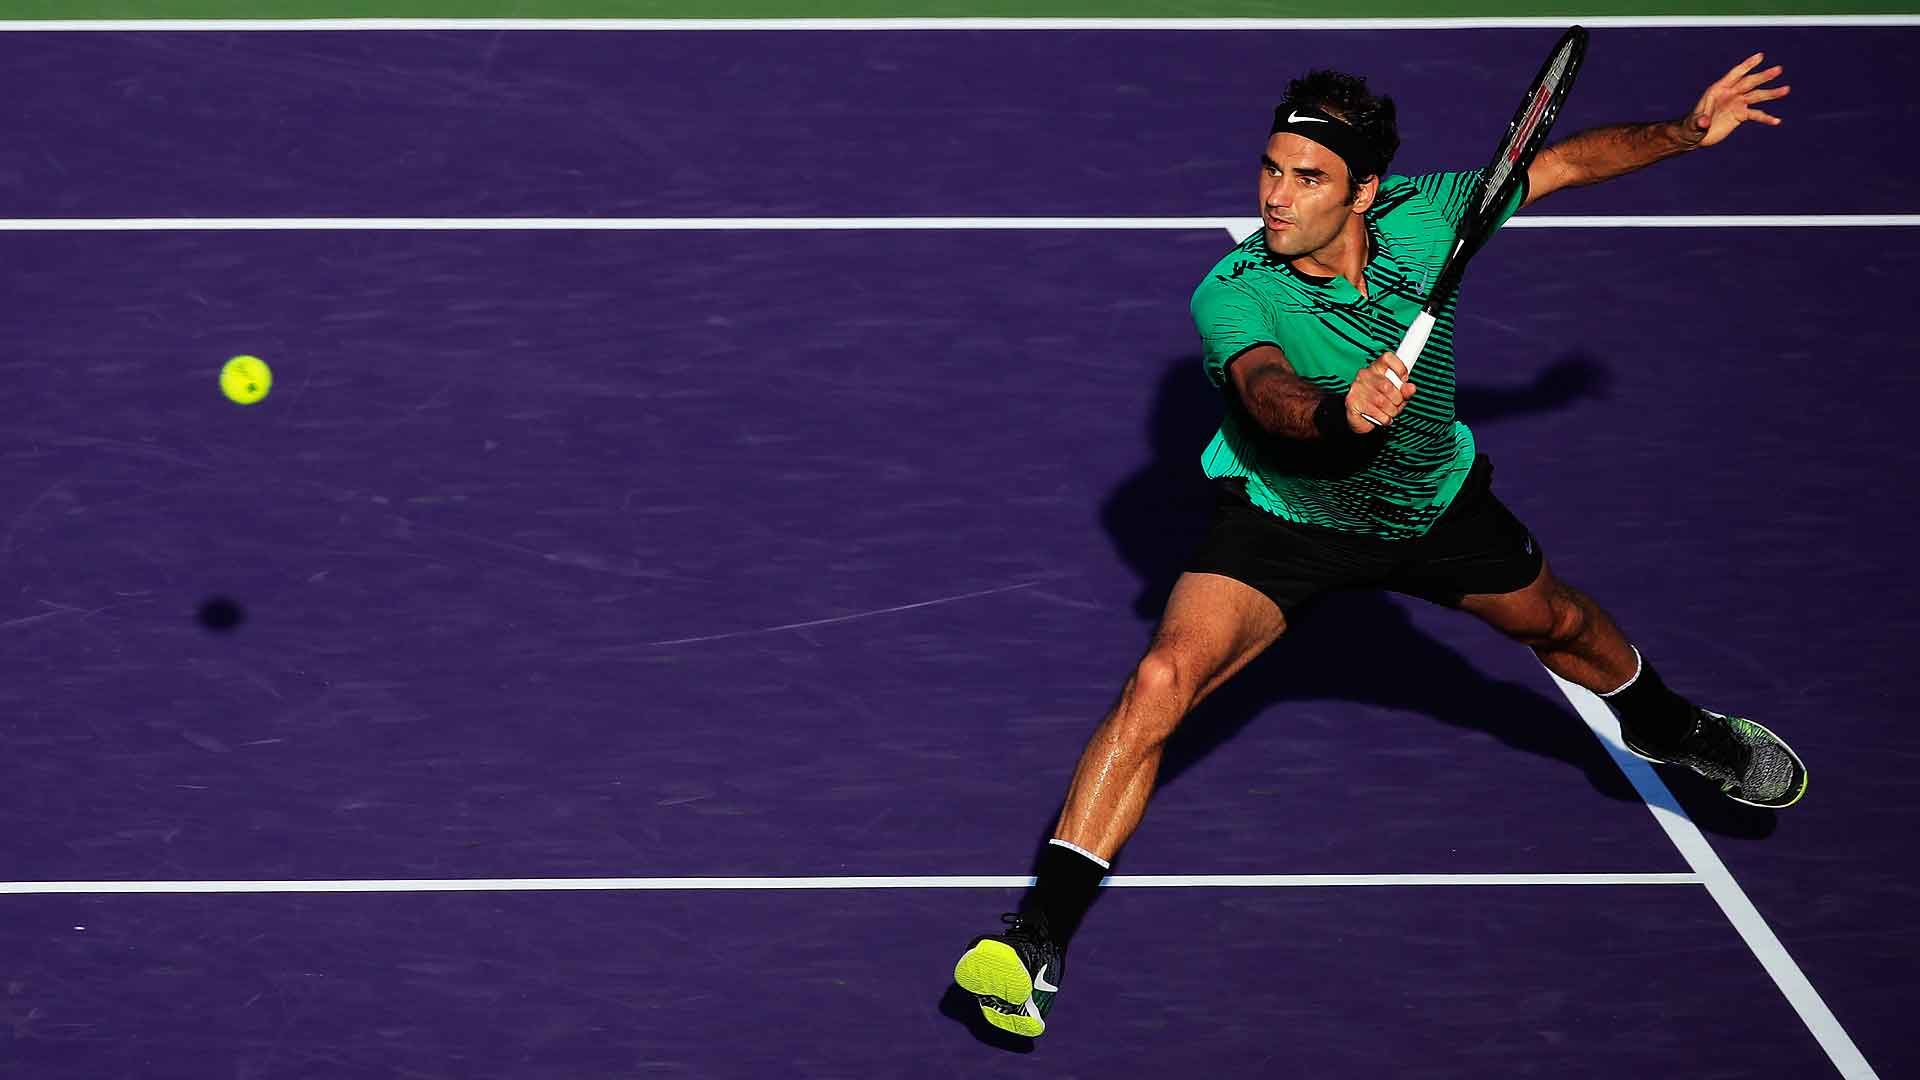 Federer Confirmed For Montreal But Wawrinka Out Atp Tour Tennis